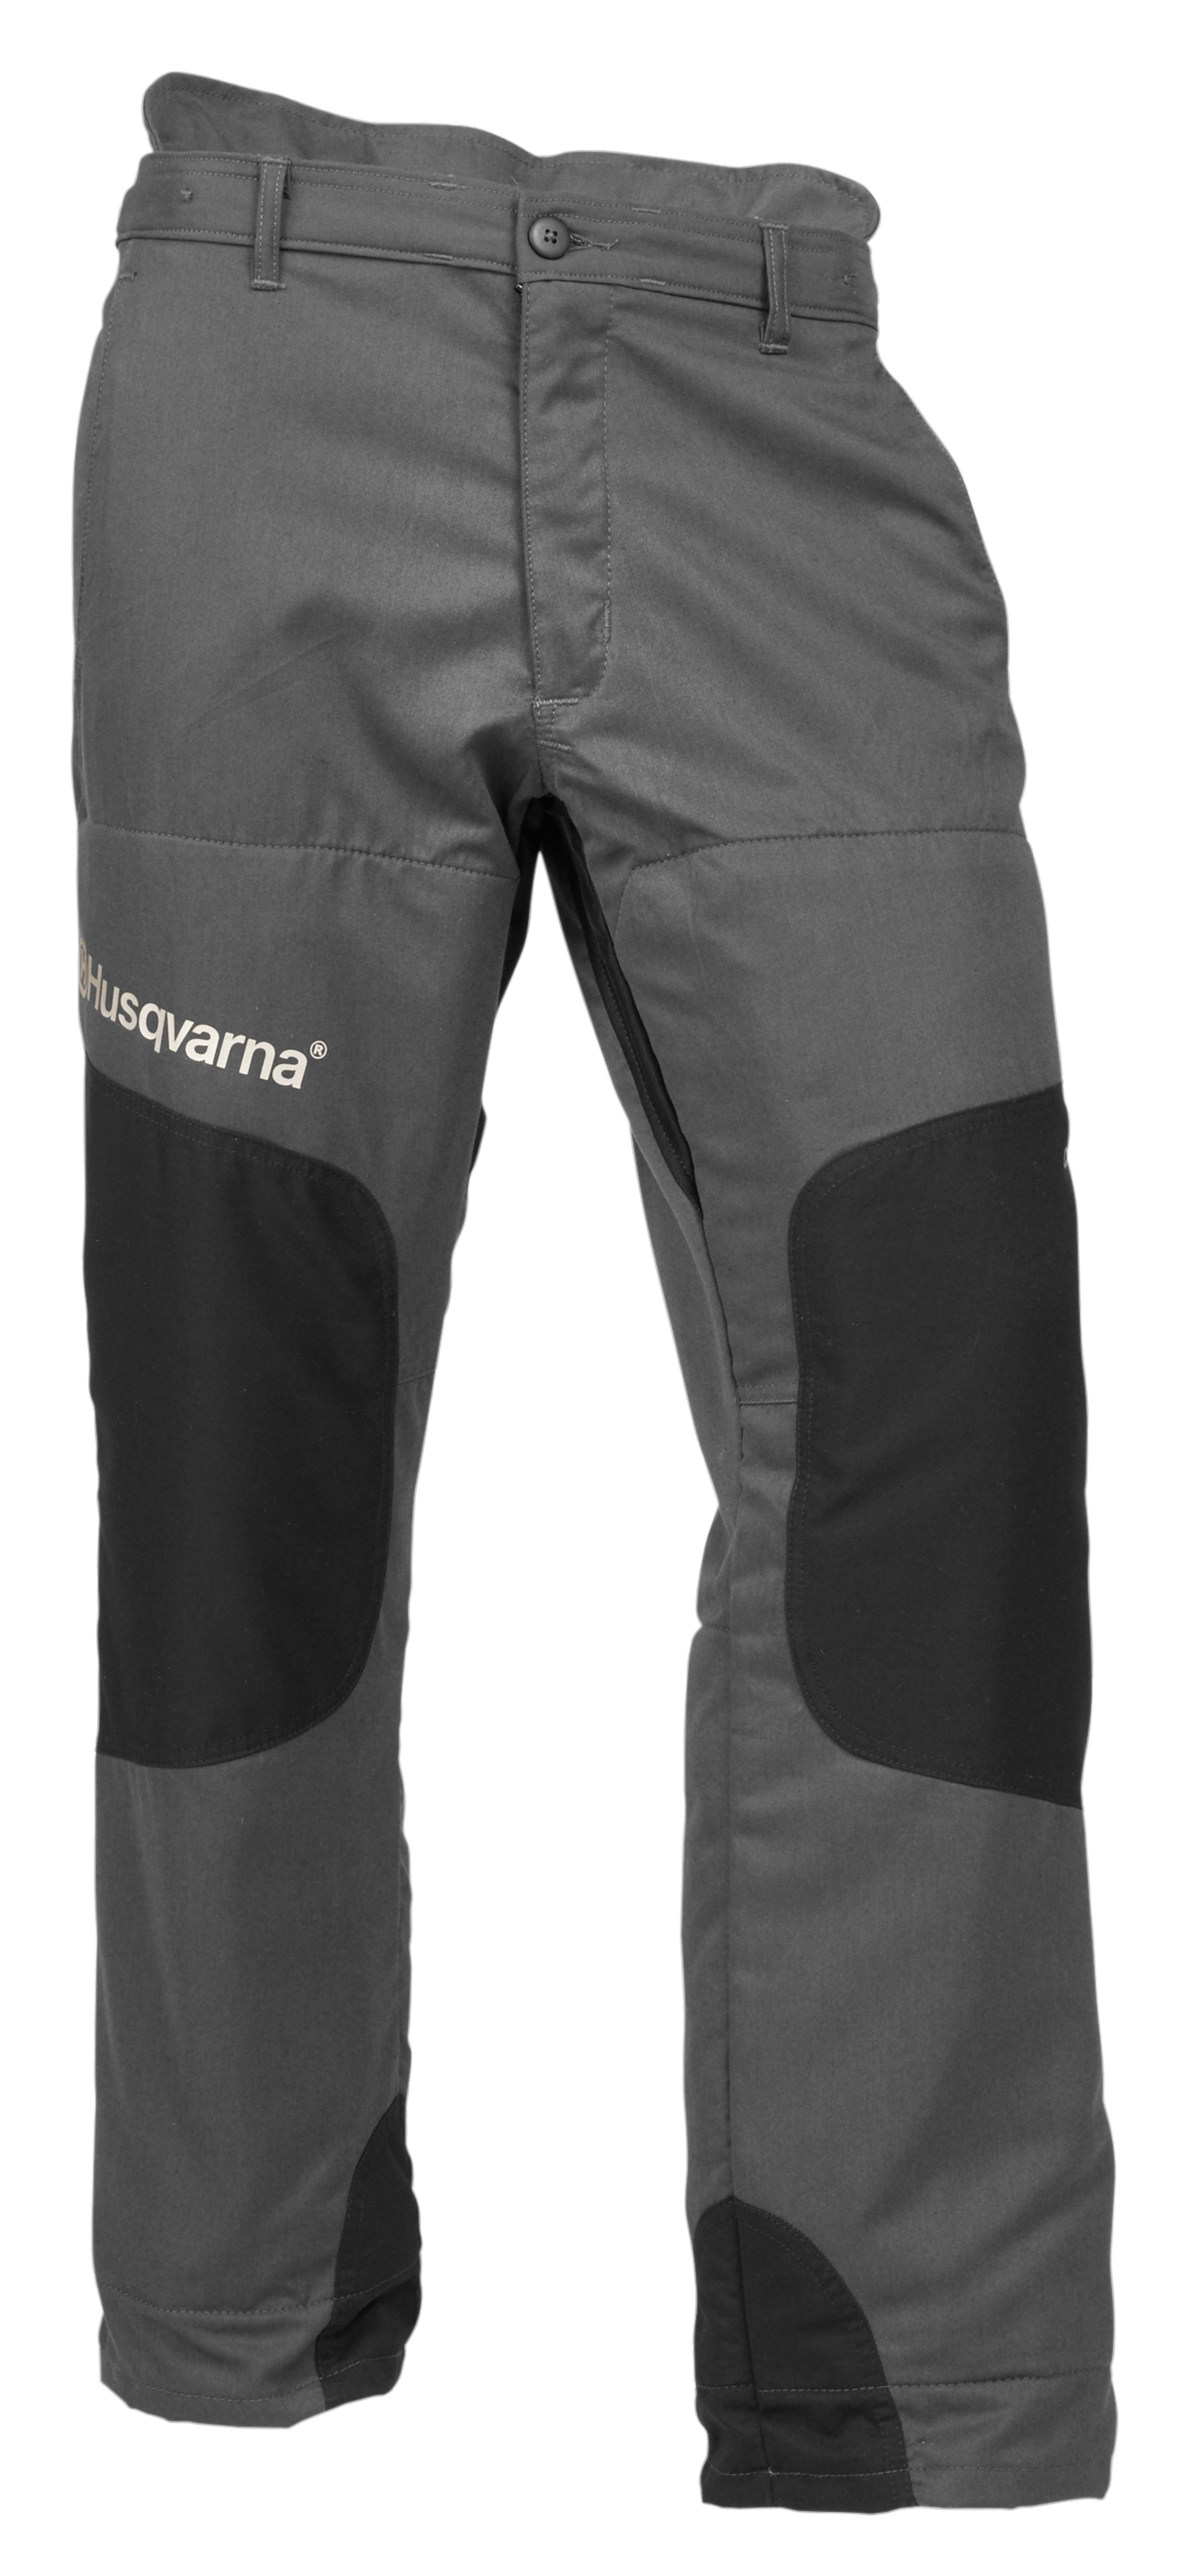 Image for Classic Chainsaw Pant                                                                                                            from HusqvarnaB2C